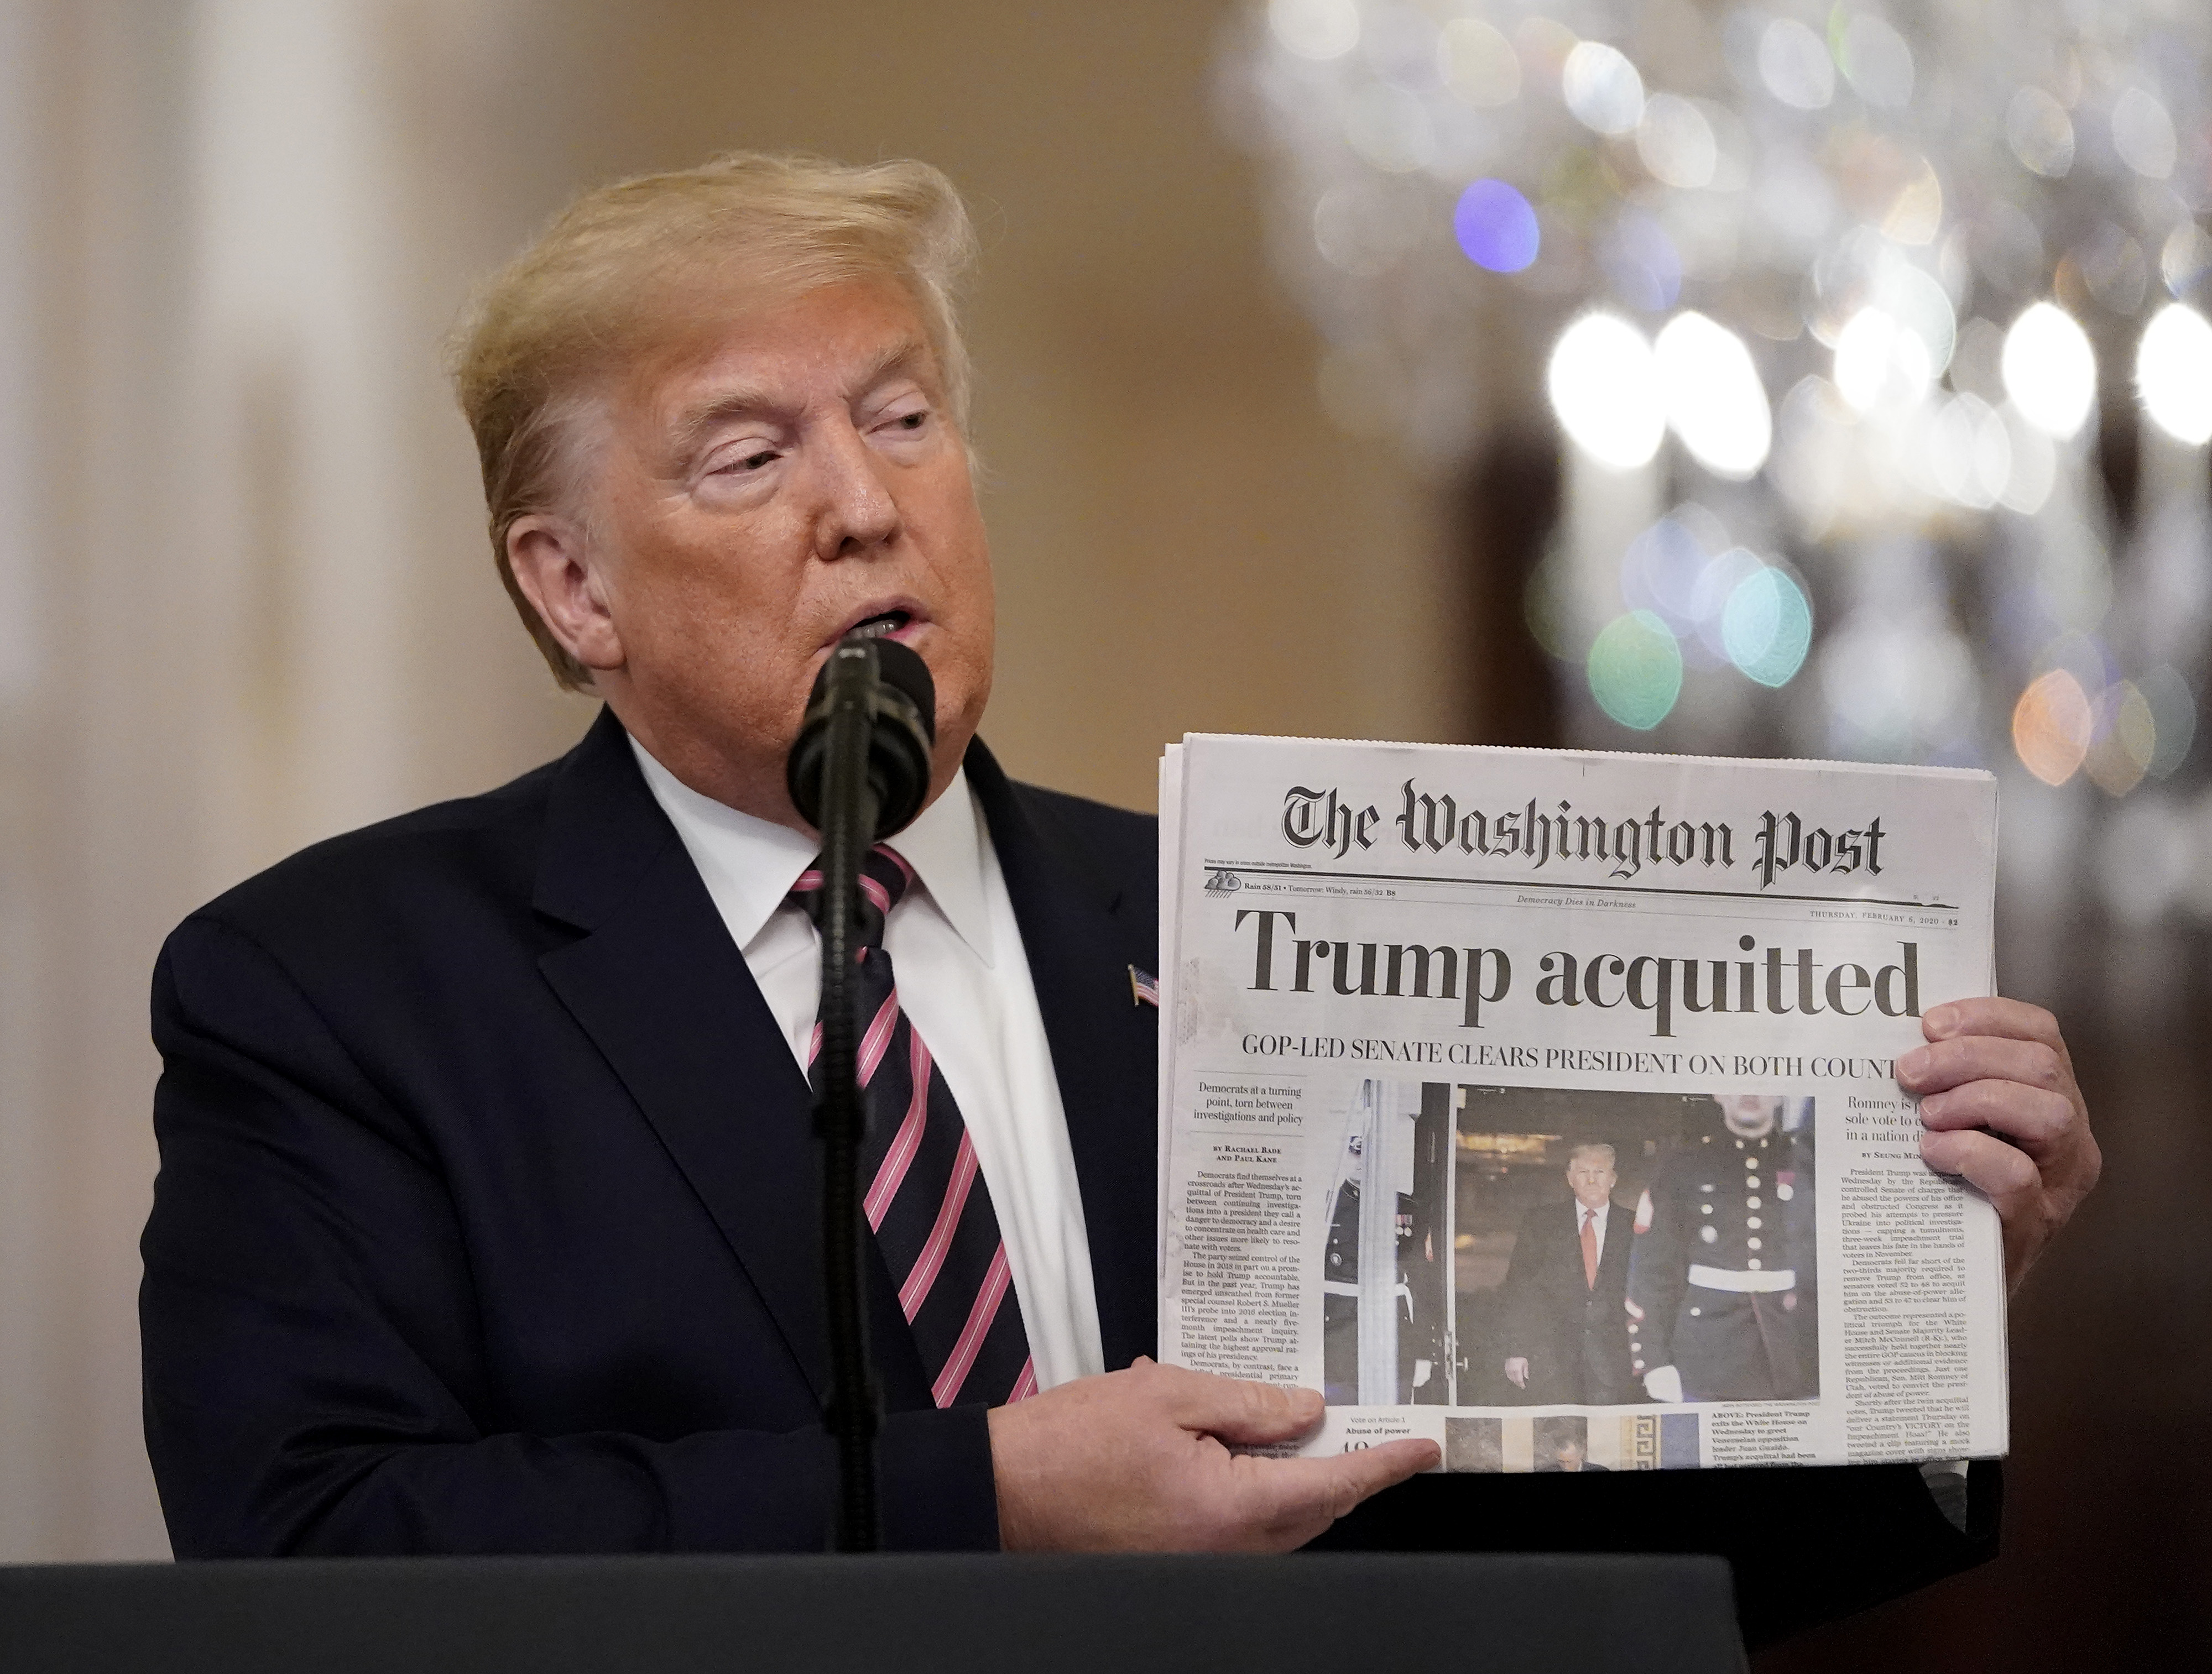 WASHINGTON, DC - FEBRUARY 06: U.S. President Donald Trump holds a copy of The Washington Post as he speaks in the East Room of the White House one day after the U.S. Senate acquitted on two articles of impeachment, ion February 6, 2020 in Washington, DC. After five months of congressional hearings and investigations about President Trump's dealings with Ukraine, the U.S. Senate formally acquitted the president on Wednesday of charges that he abused his power and obstructed Congress. (Photo by Drew Angerer/Getty Images)